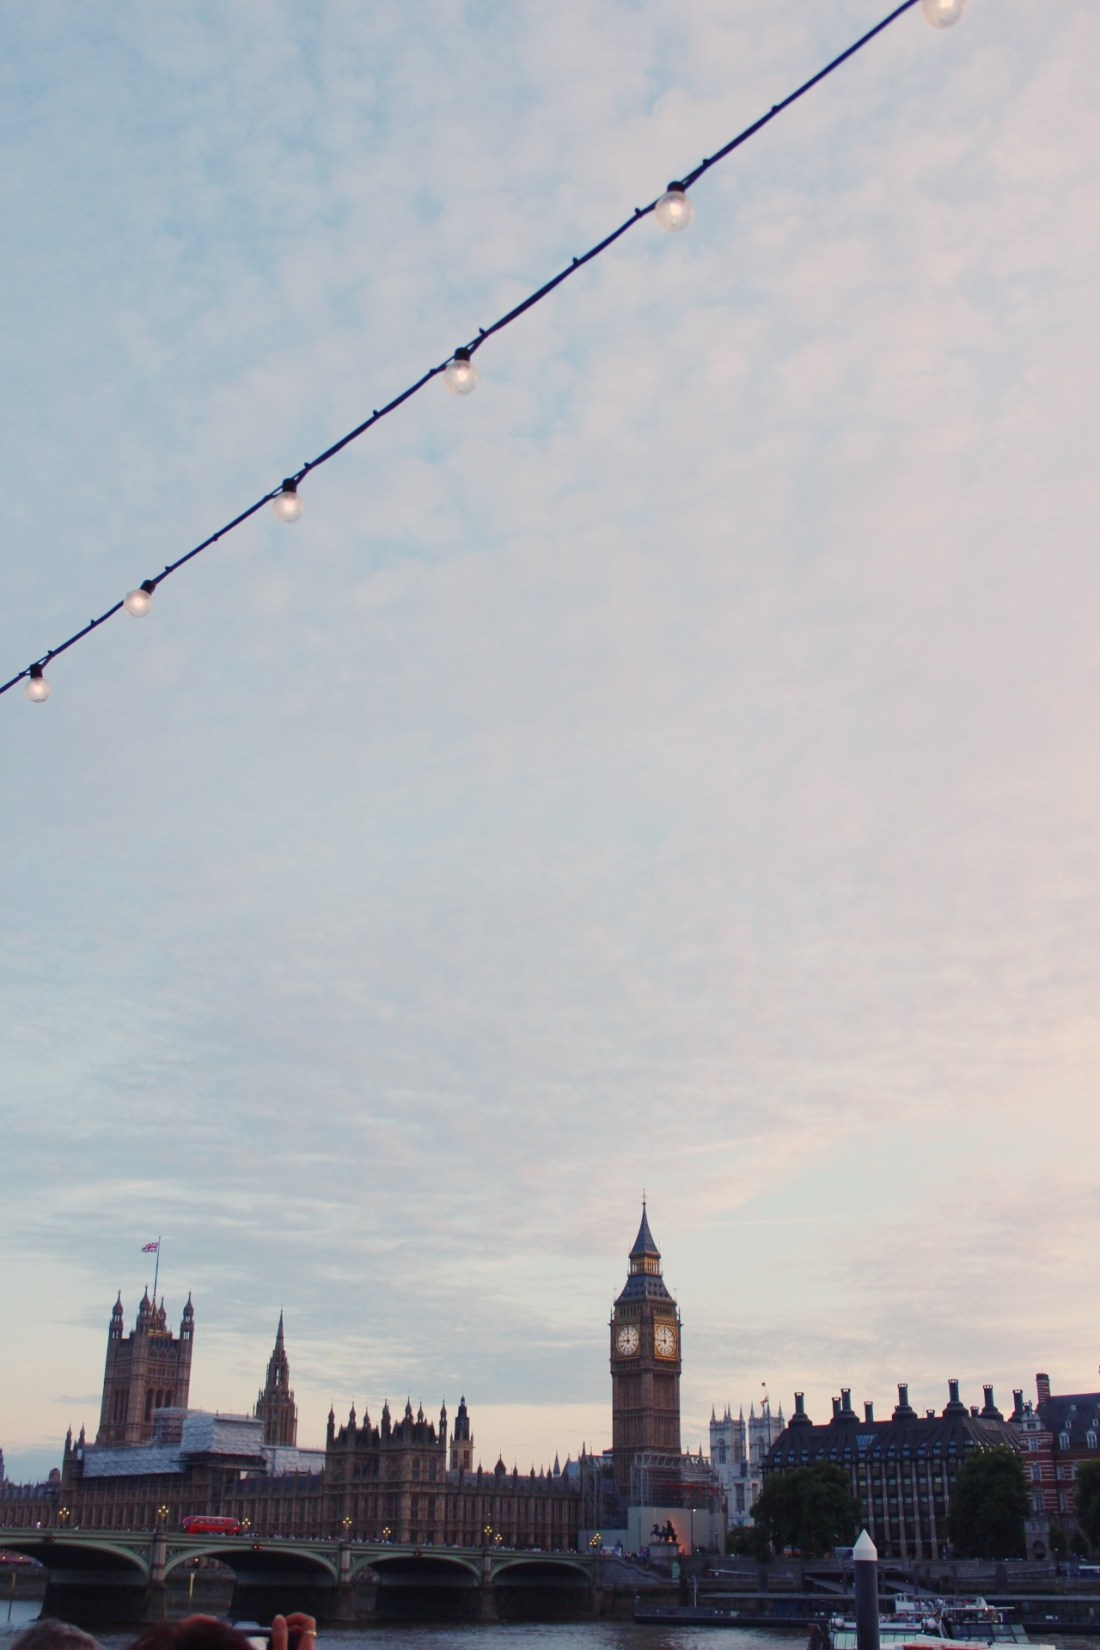 Oh London, how I love you! Here's a recap of all that I did during my 2 trips to London while I was studying abroad in the UK.